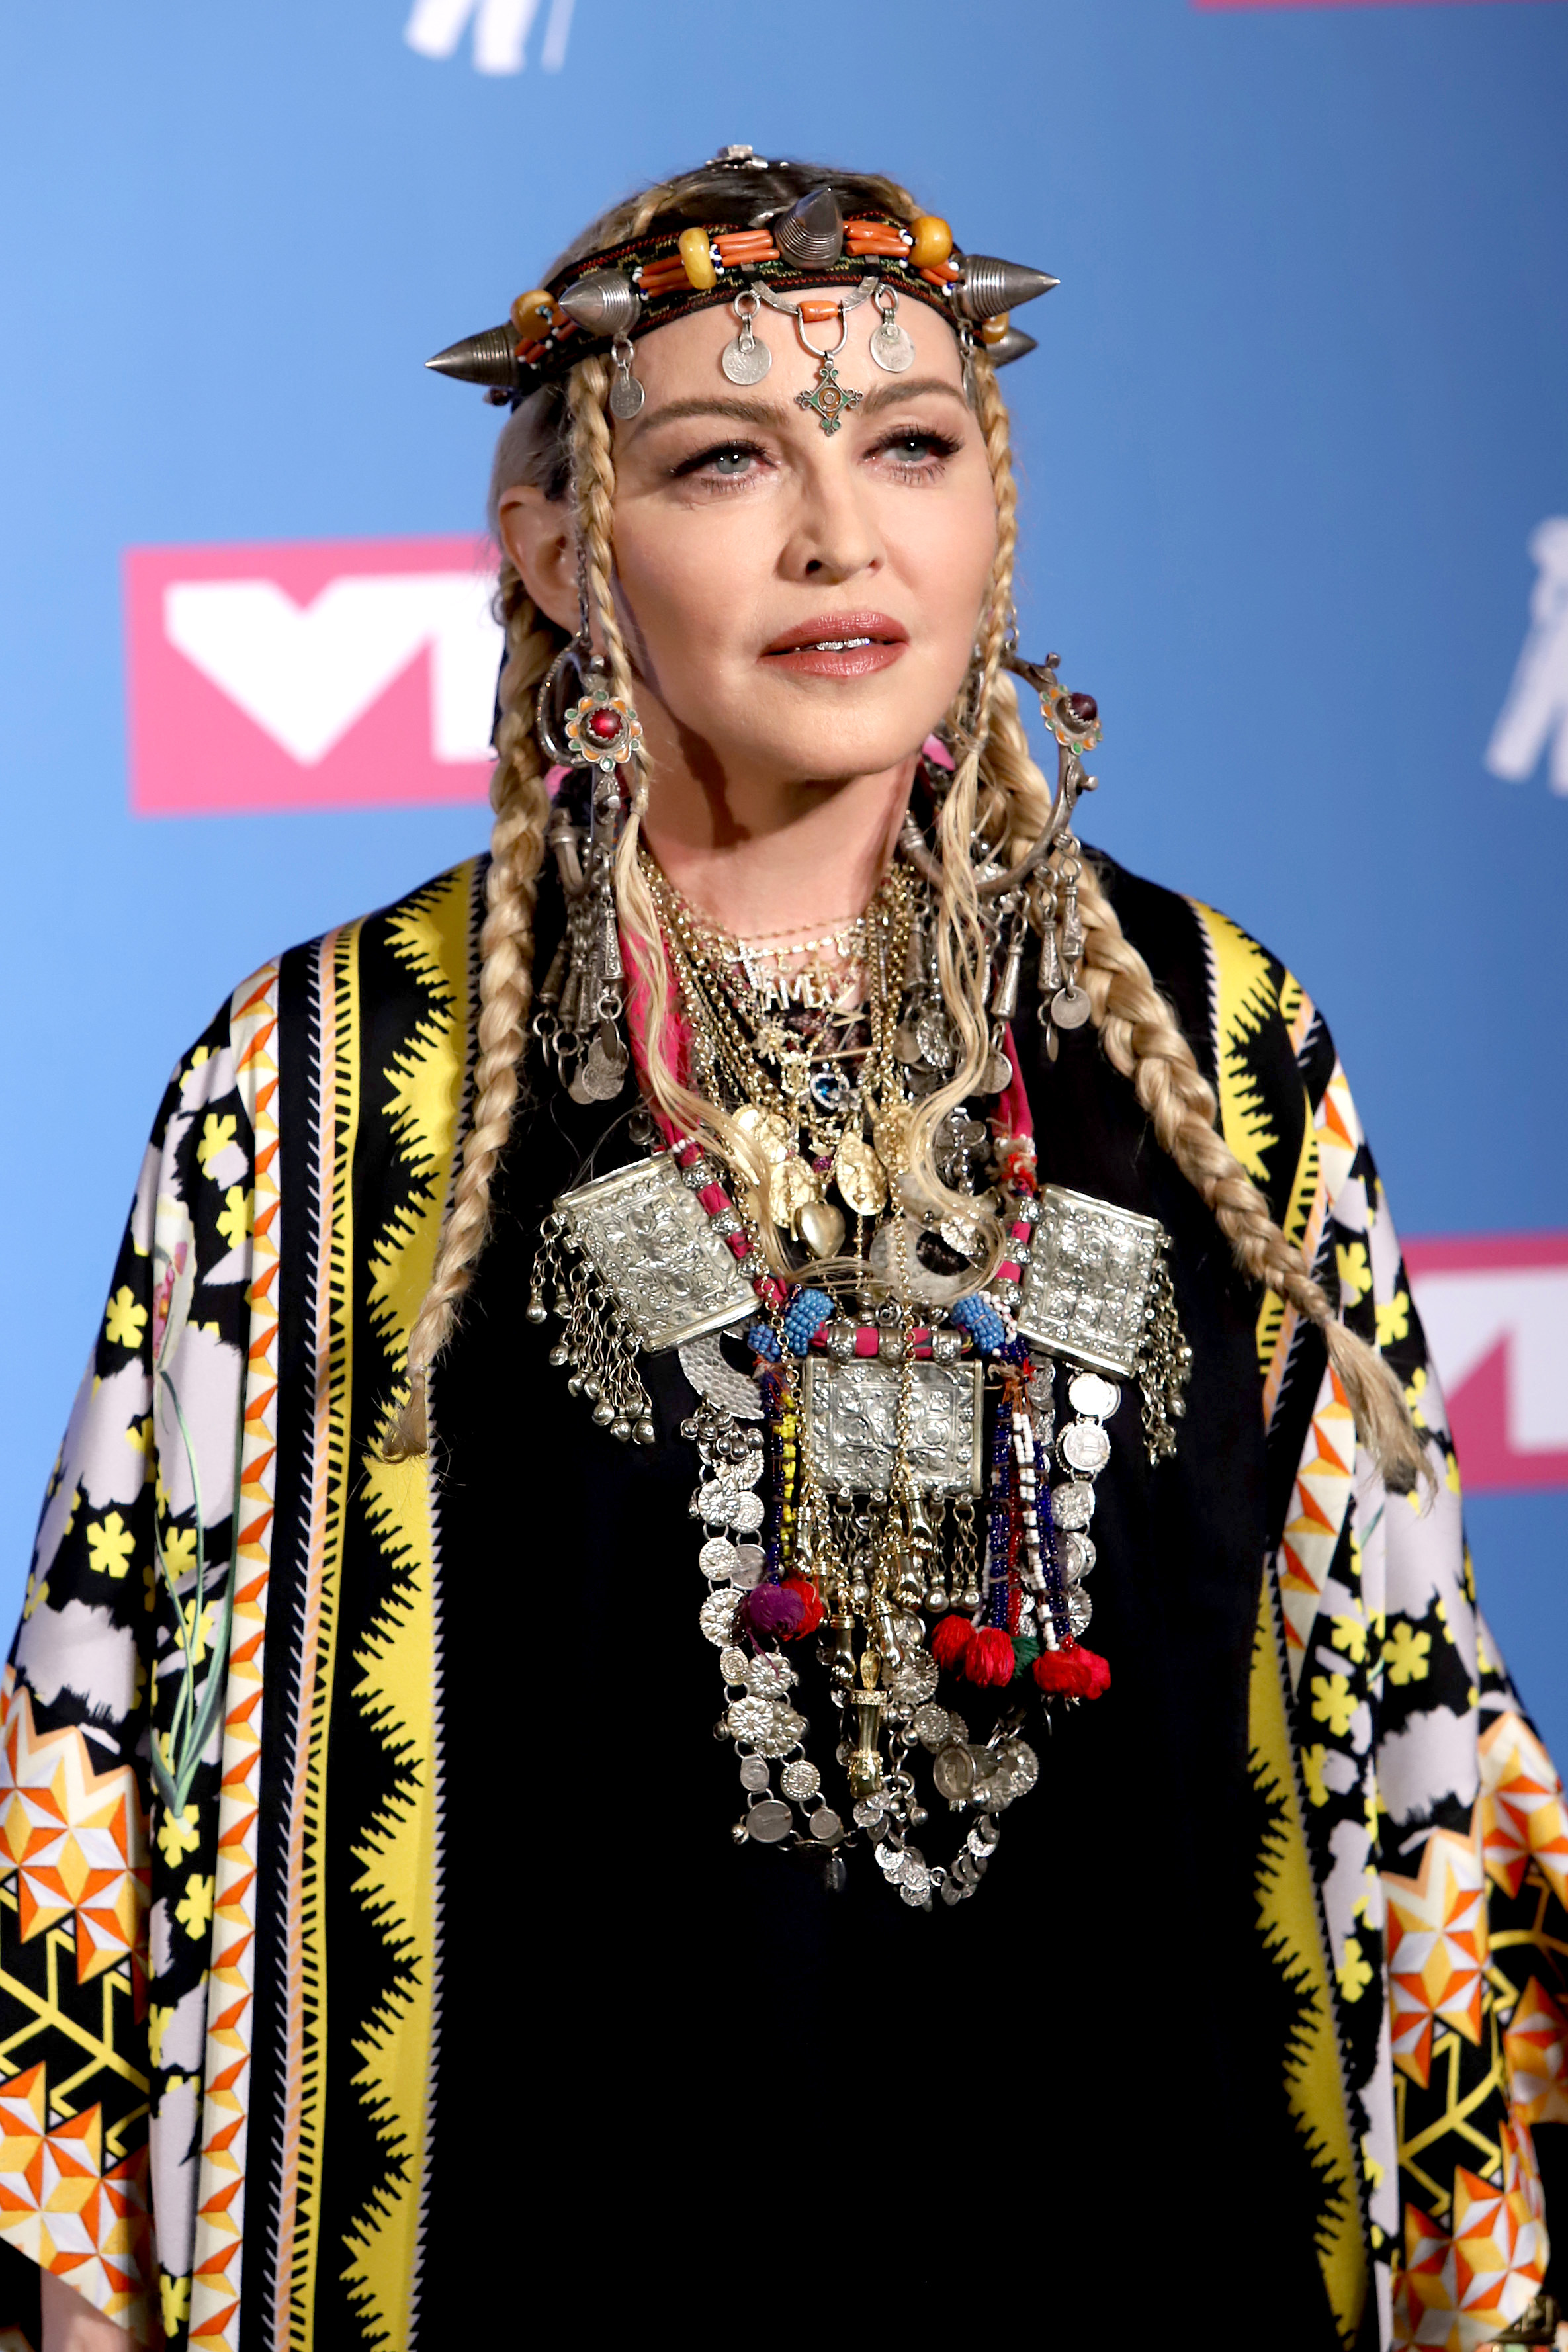 Madonna spoke about the ridicule of her figure 09.12.2009 86